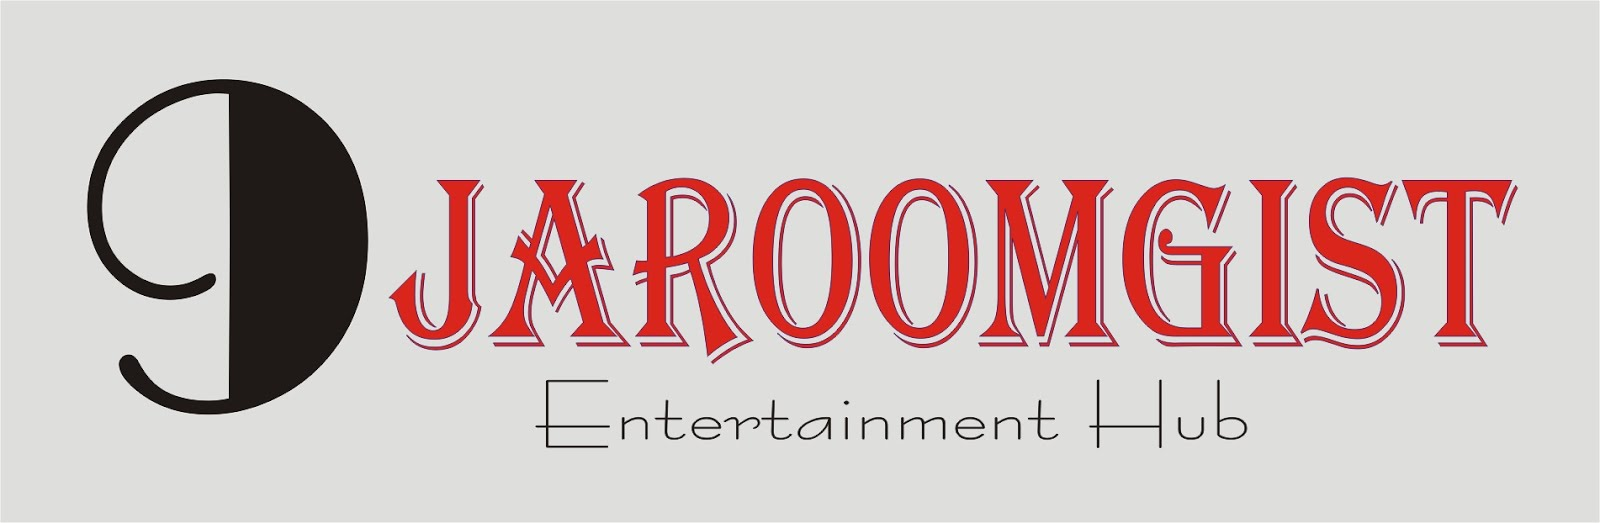 9jaroomgist | Entertainment & Gist Portal